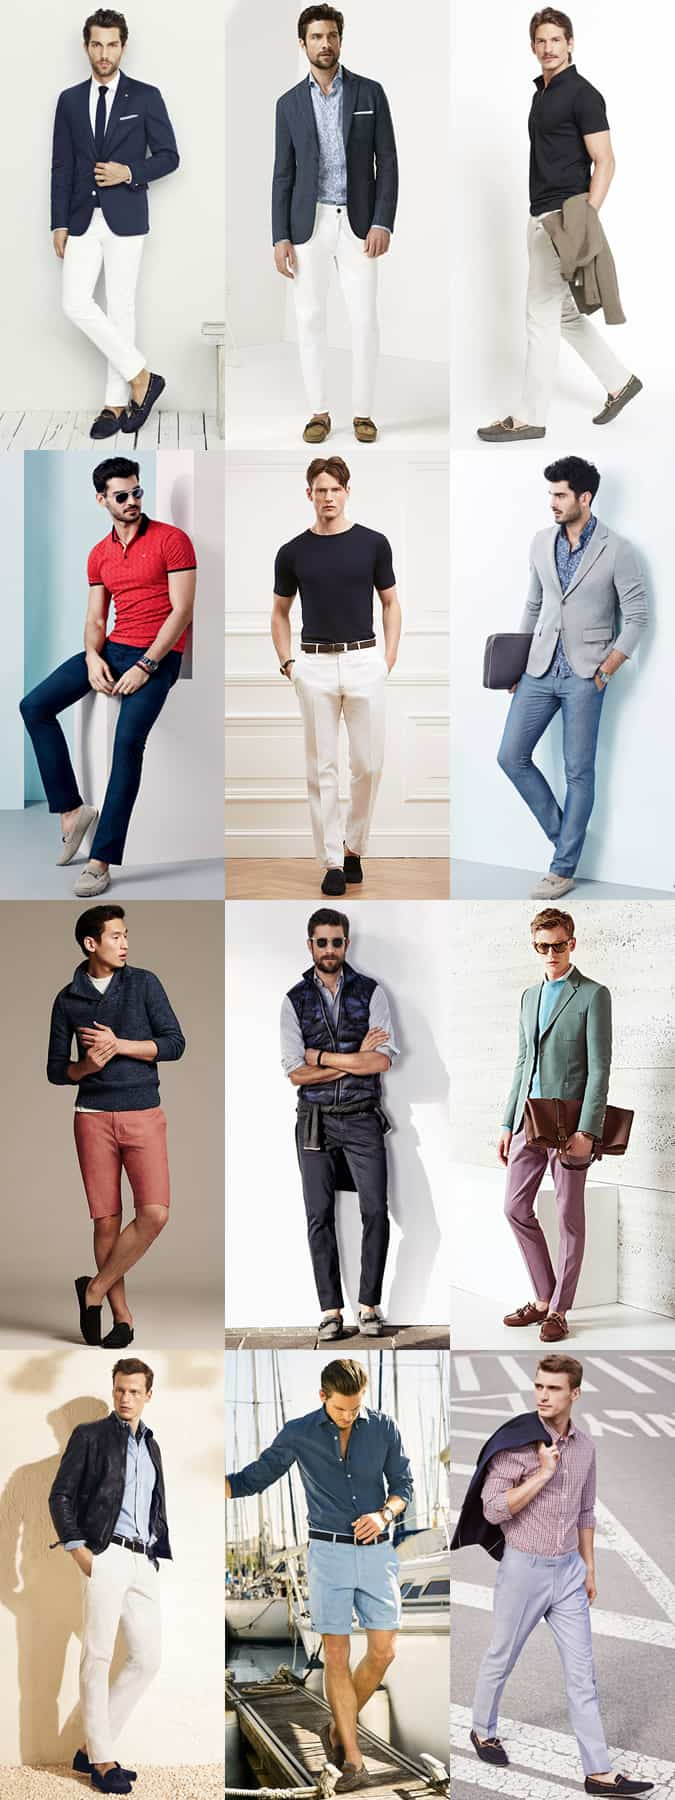 Men's Driving Shoes Outfit Inspiration Lookbook